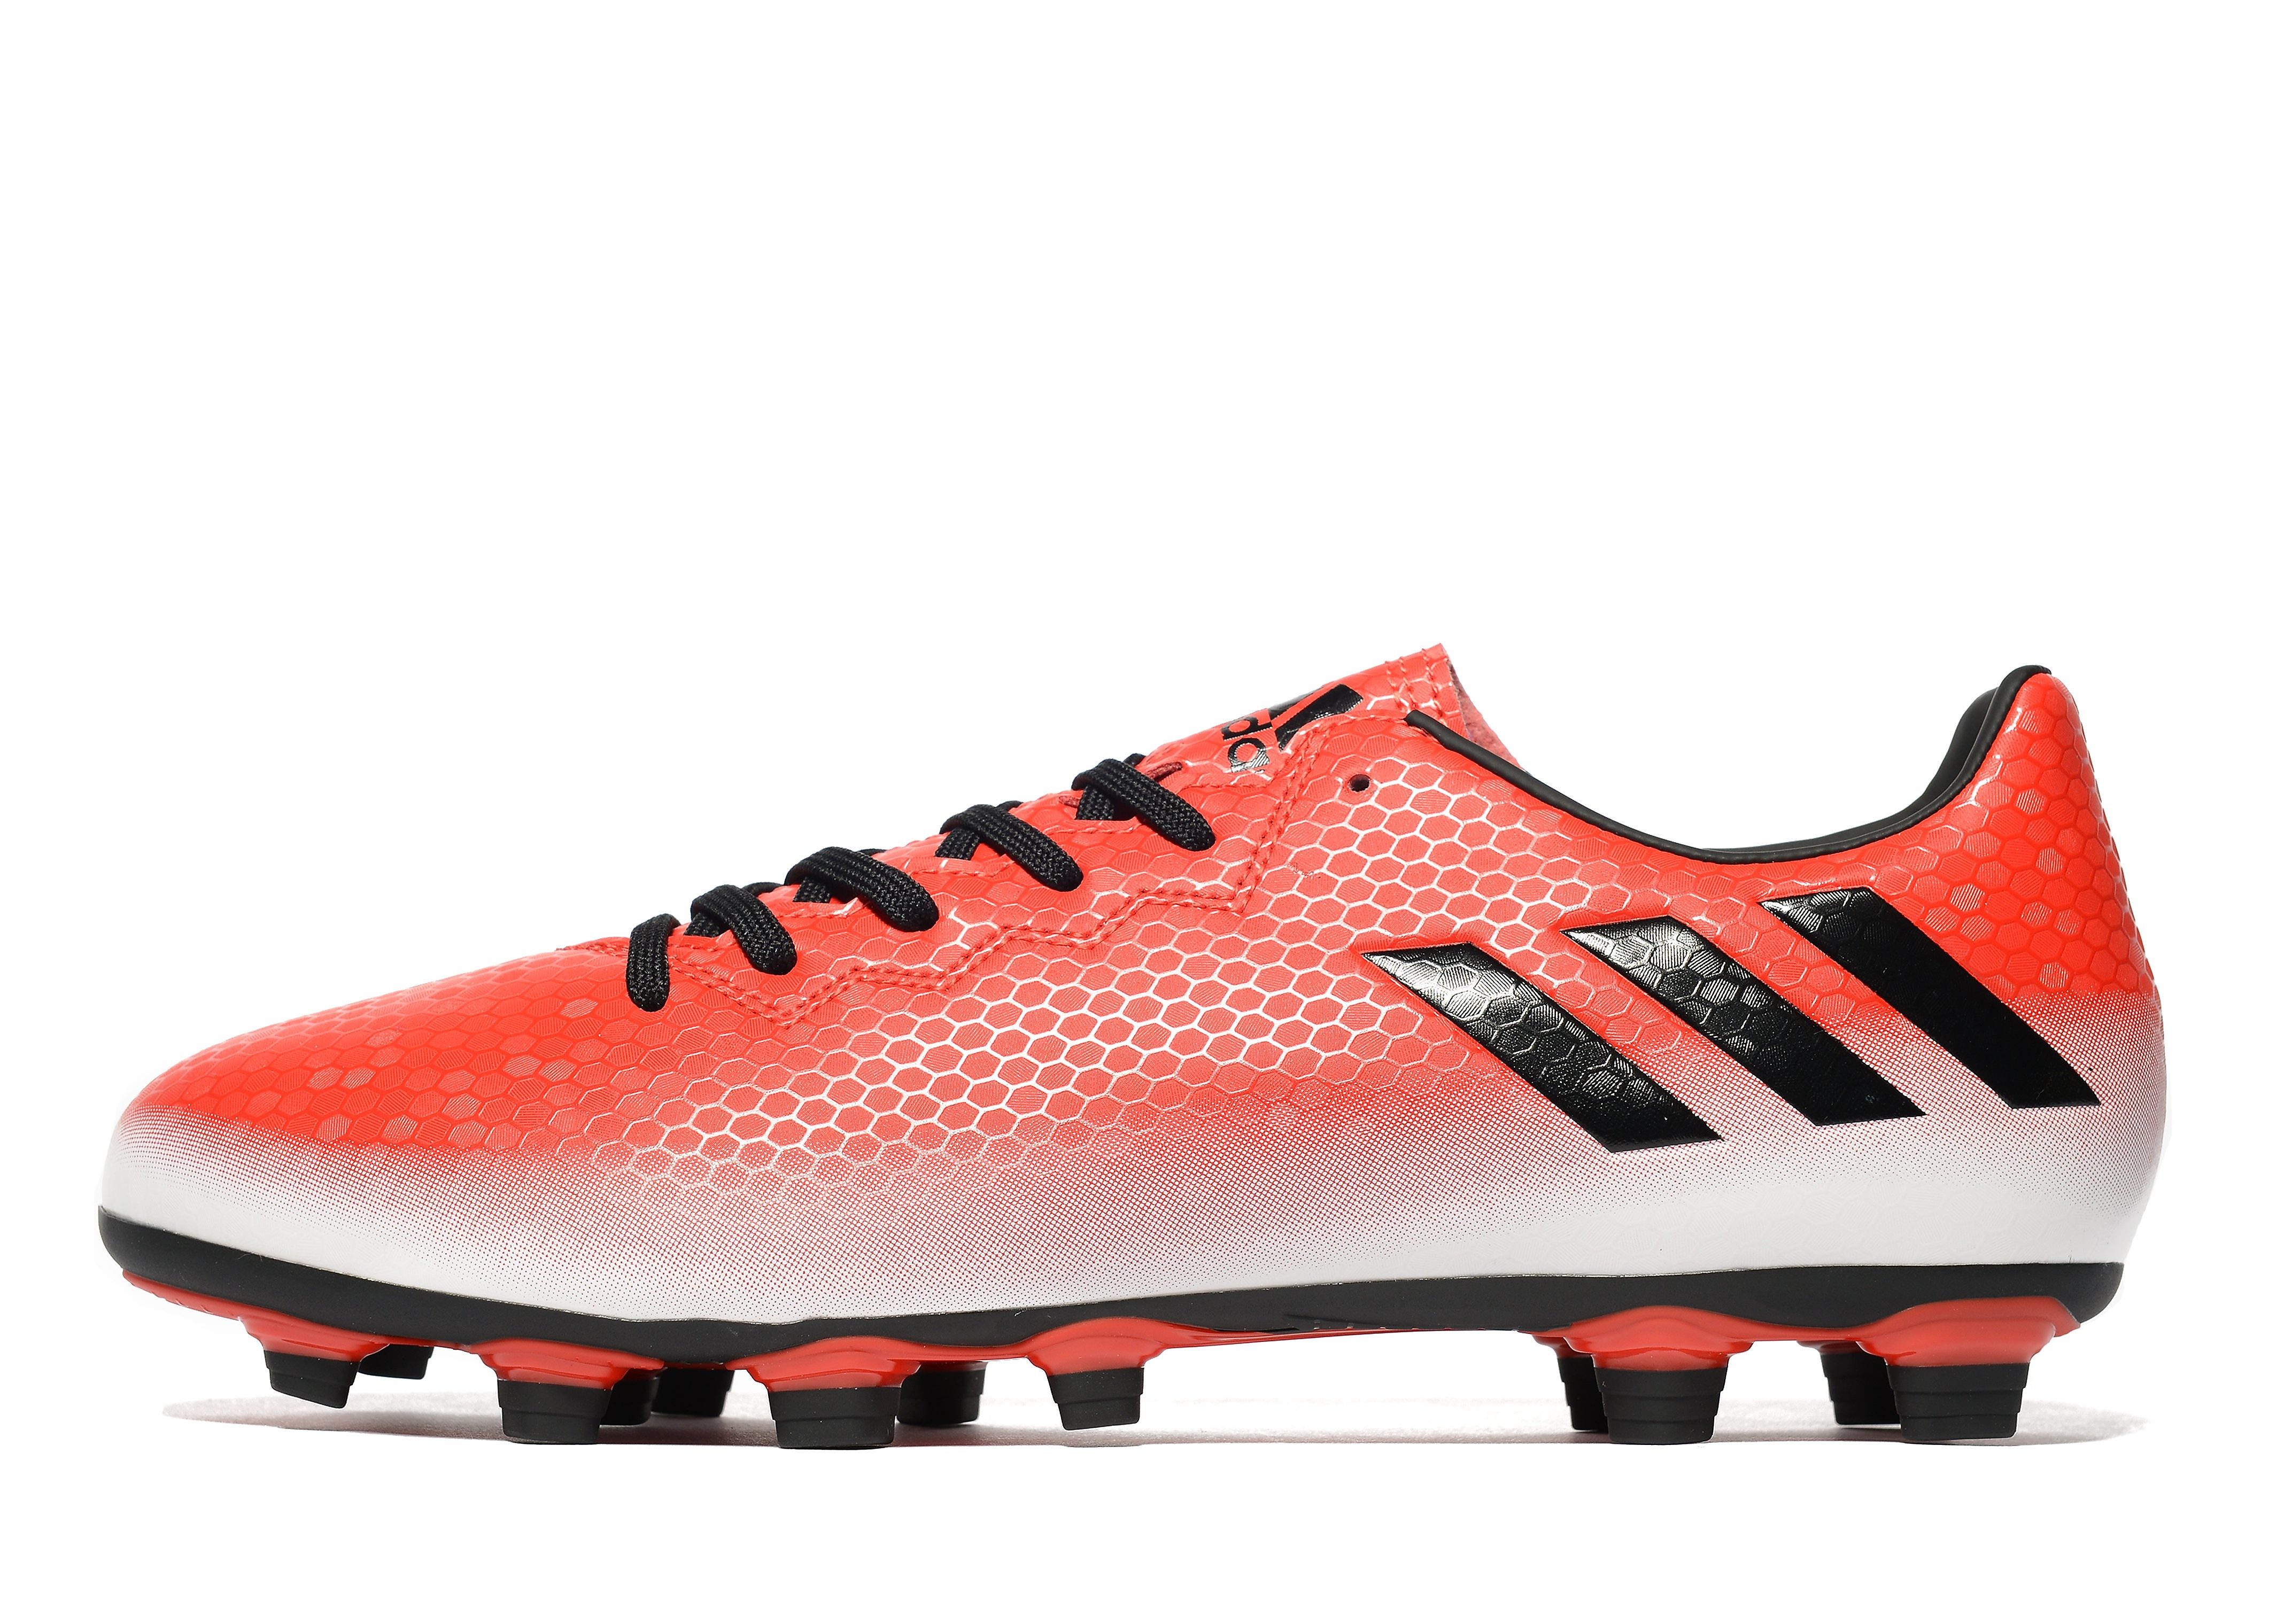 adidas Red Limit Messi 16.4 FXG